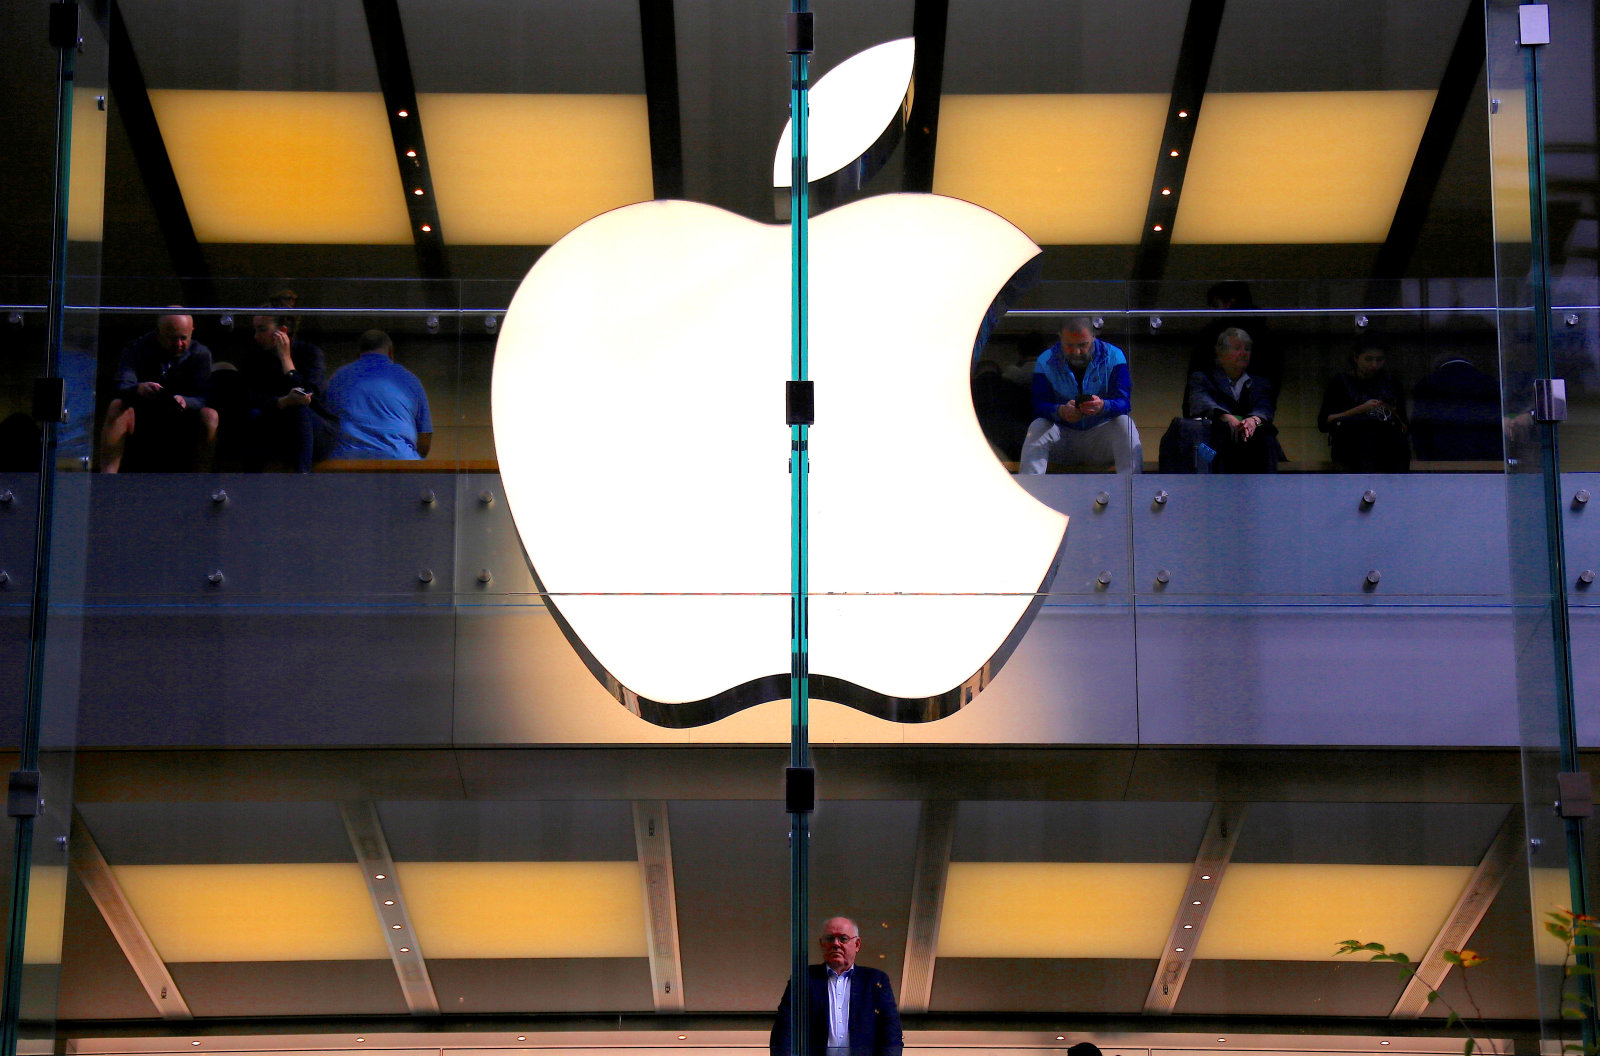 A customer stands underneath an illuminated Apple logo as he looks out the window of the Apple store located in central Sydney, Australia, May 28, 2018. REUTERS/David Gray     TPX IMAGES OF THE DAY